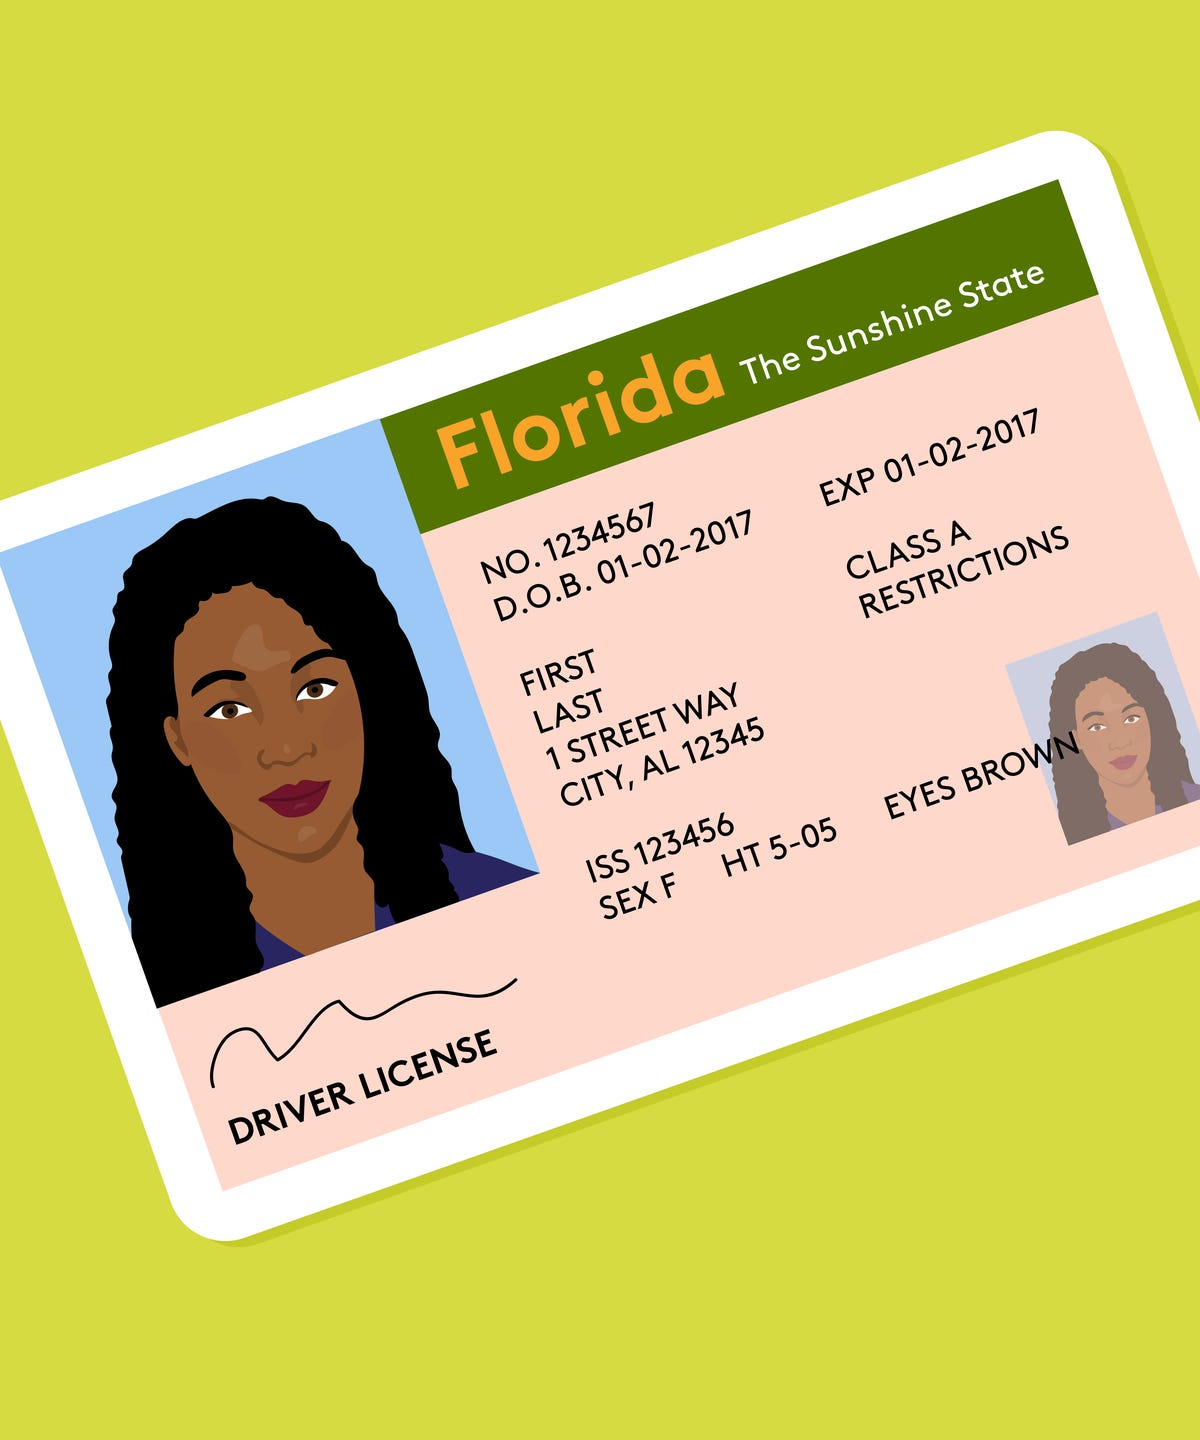 How To Take A Good Drivers License Photo: Tips & Tricks